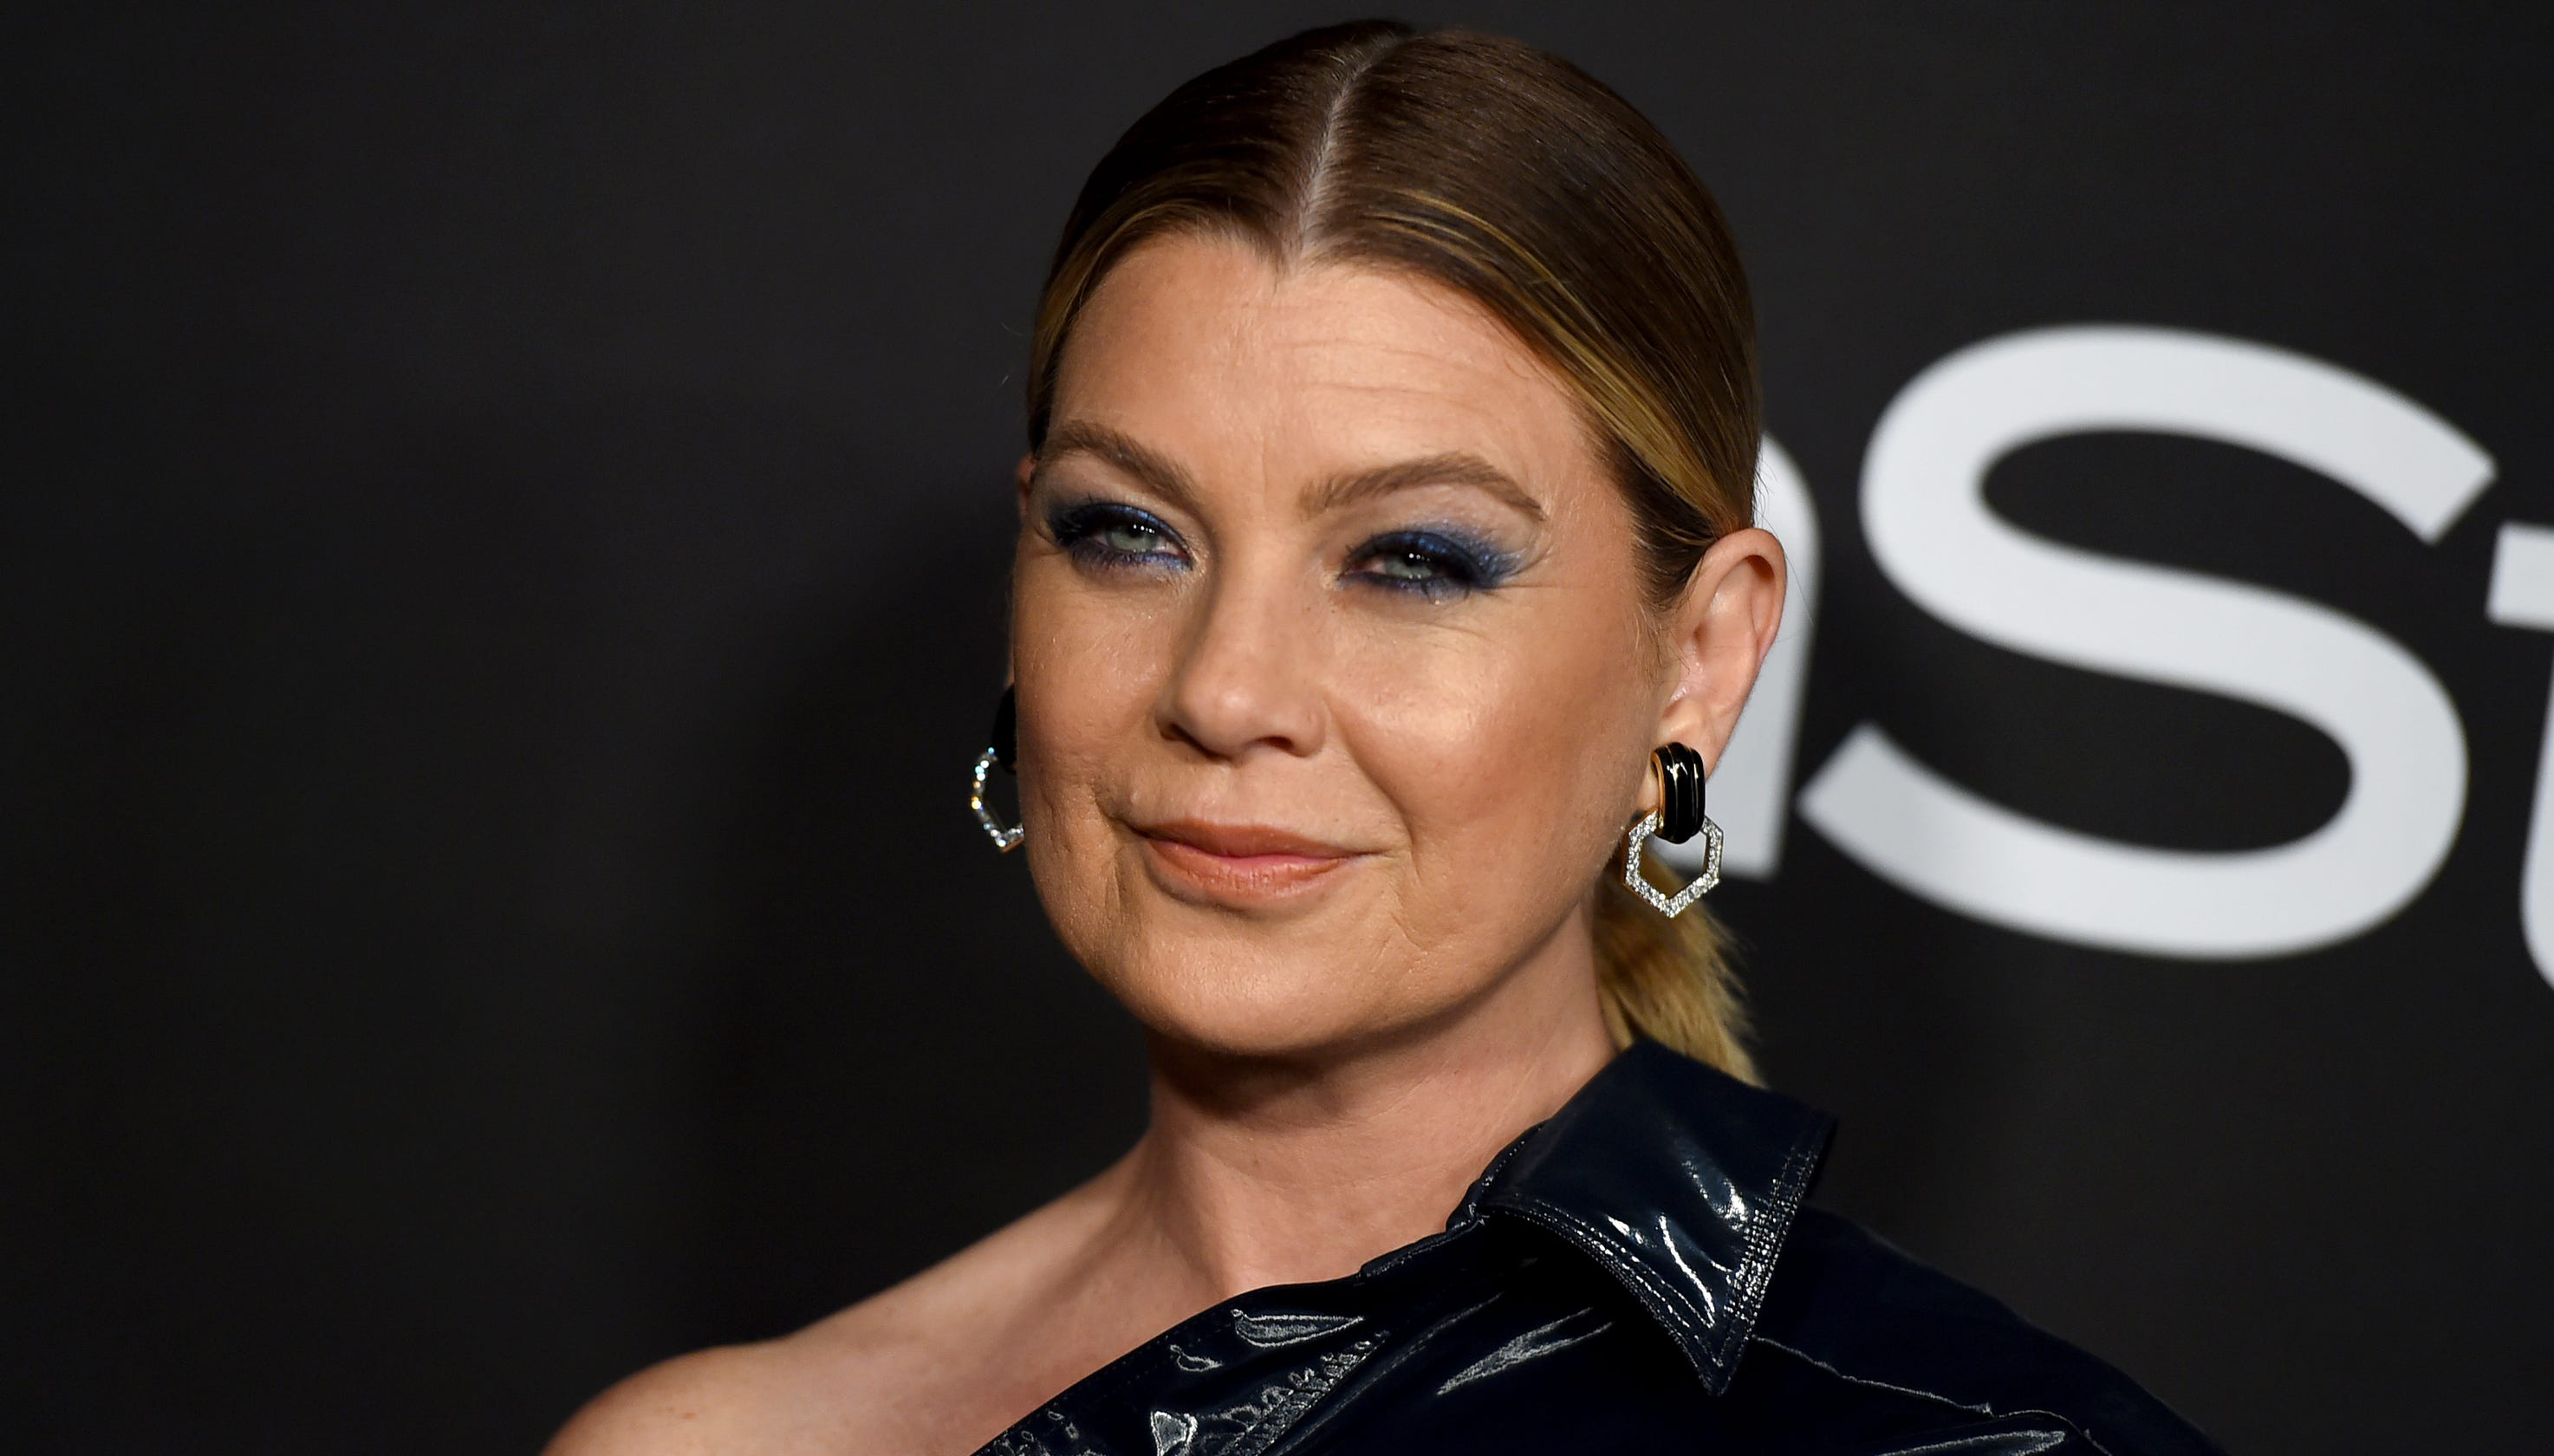 Ellen Pompeo Talks About Toxic Culture On The Early Days Of Greys